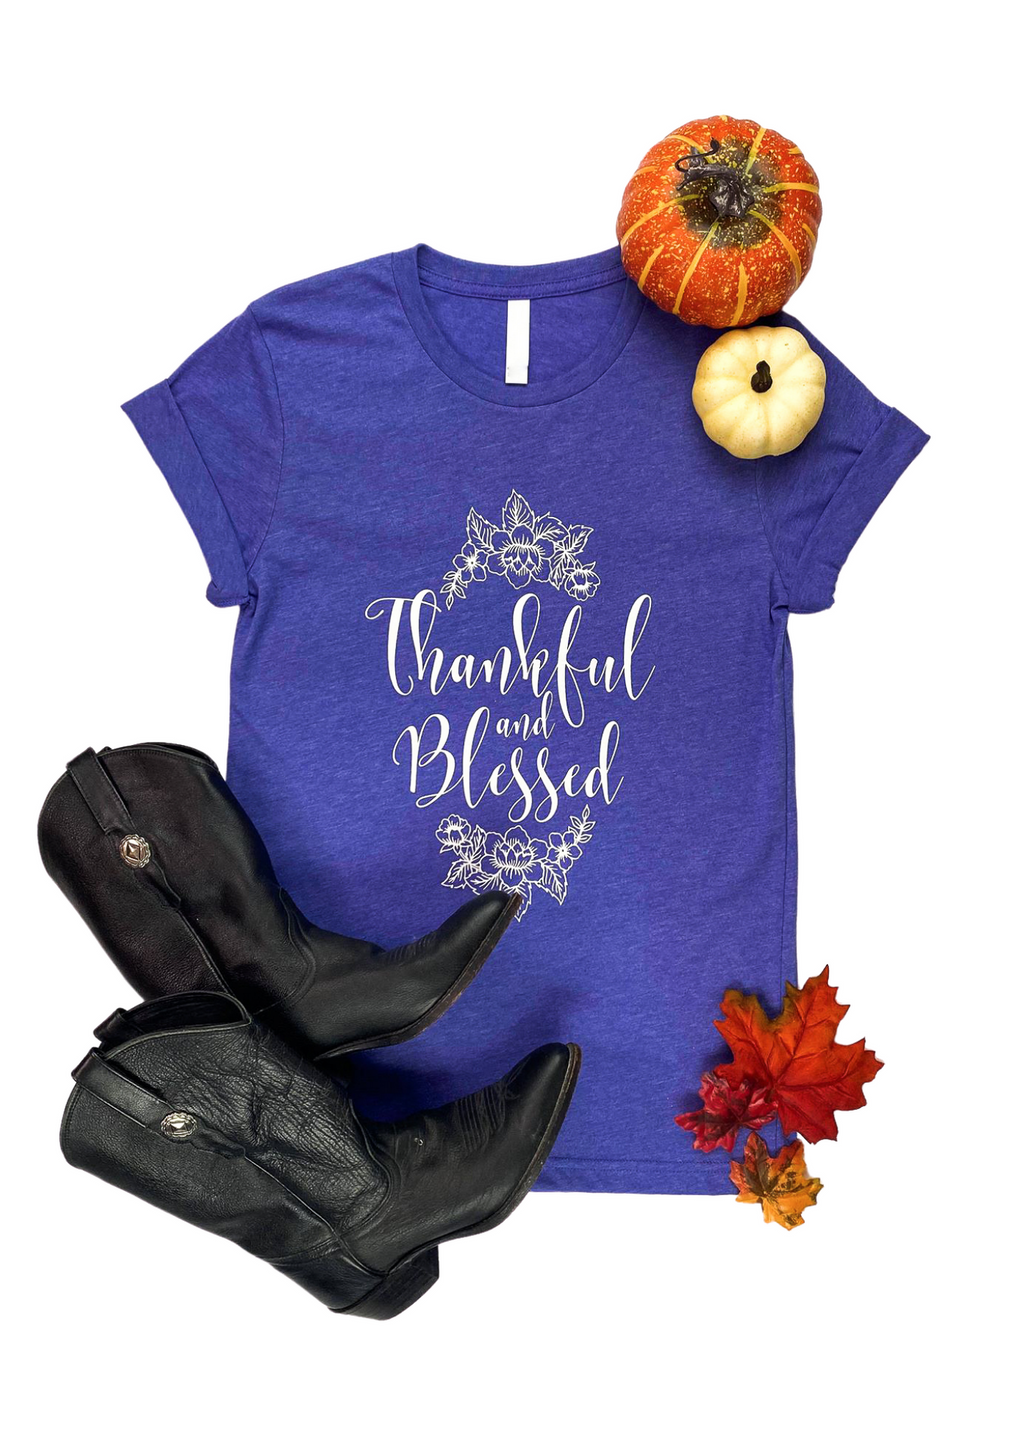 "Lapis Short Sleeve Tee with ""Thankful & Blessed"" and Floral Graphic in White Ink in the center"